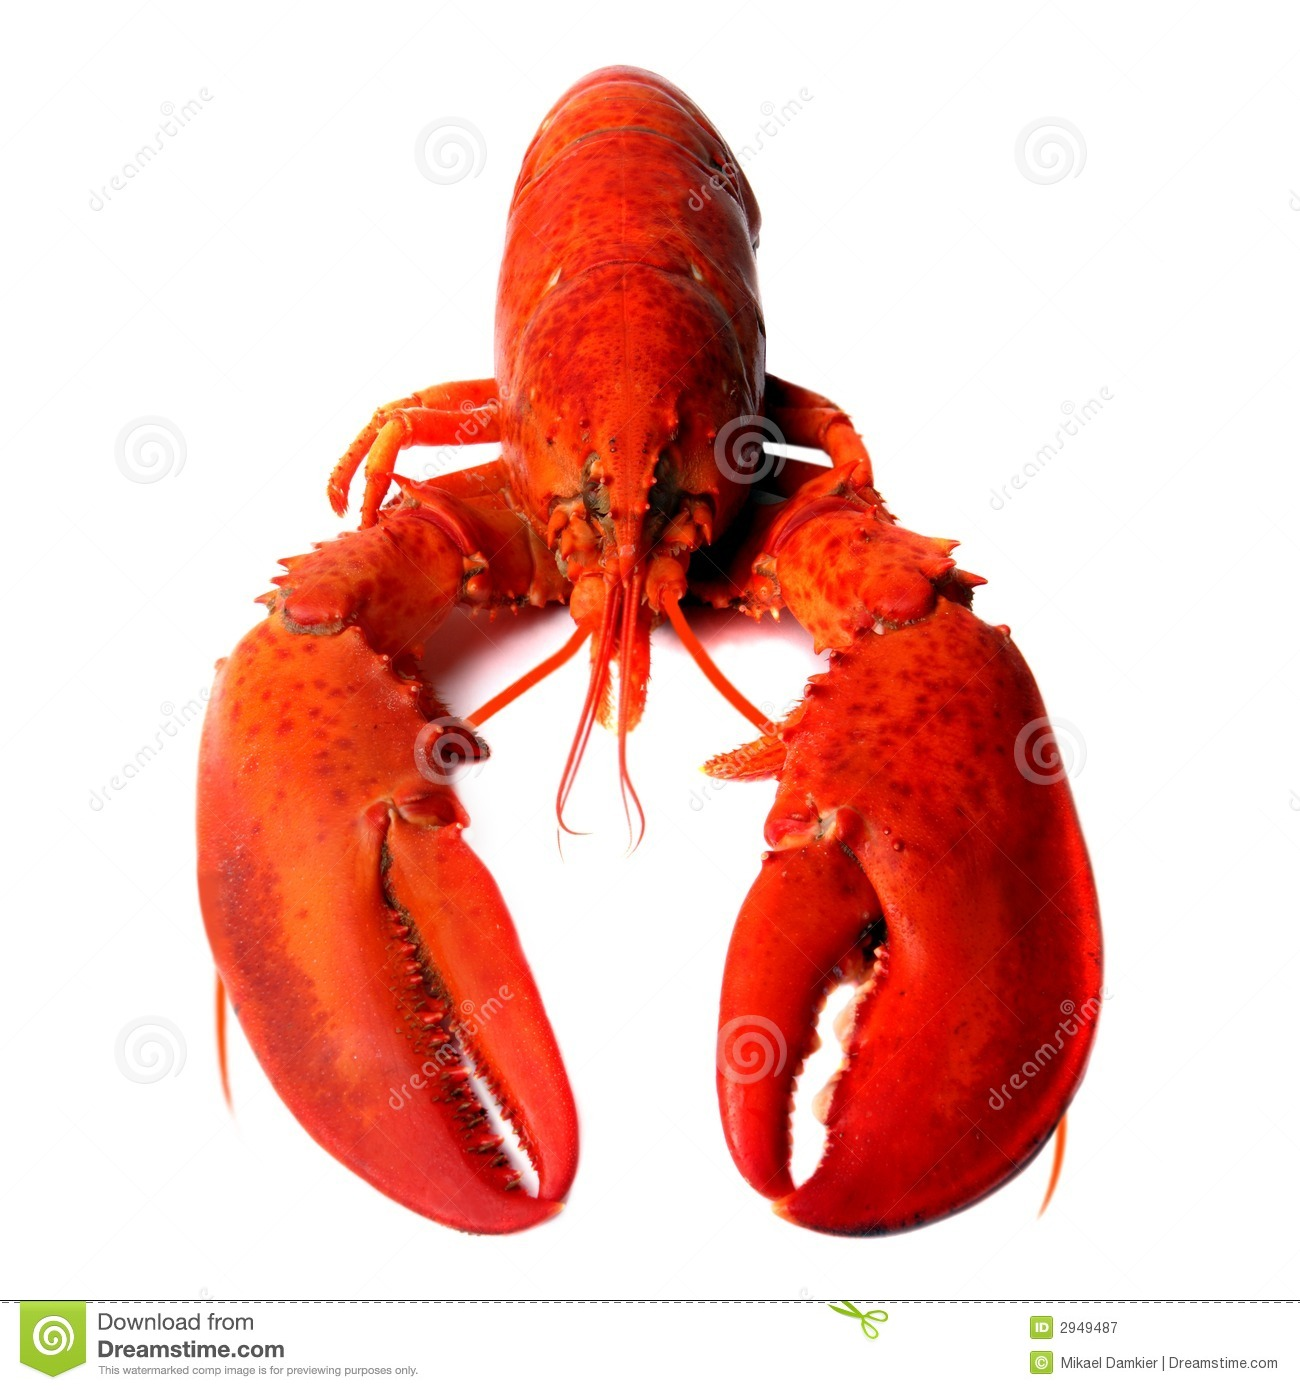 Lobster Images lobster stock photos, images, & pictures – (19,069 ...